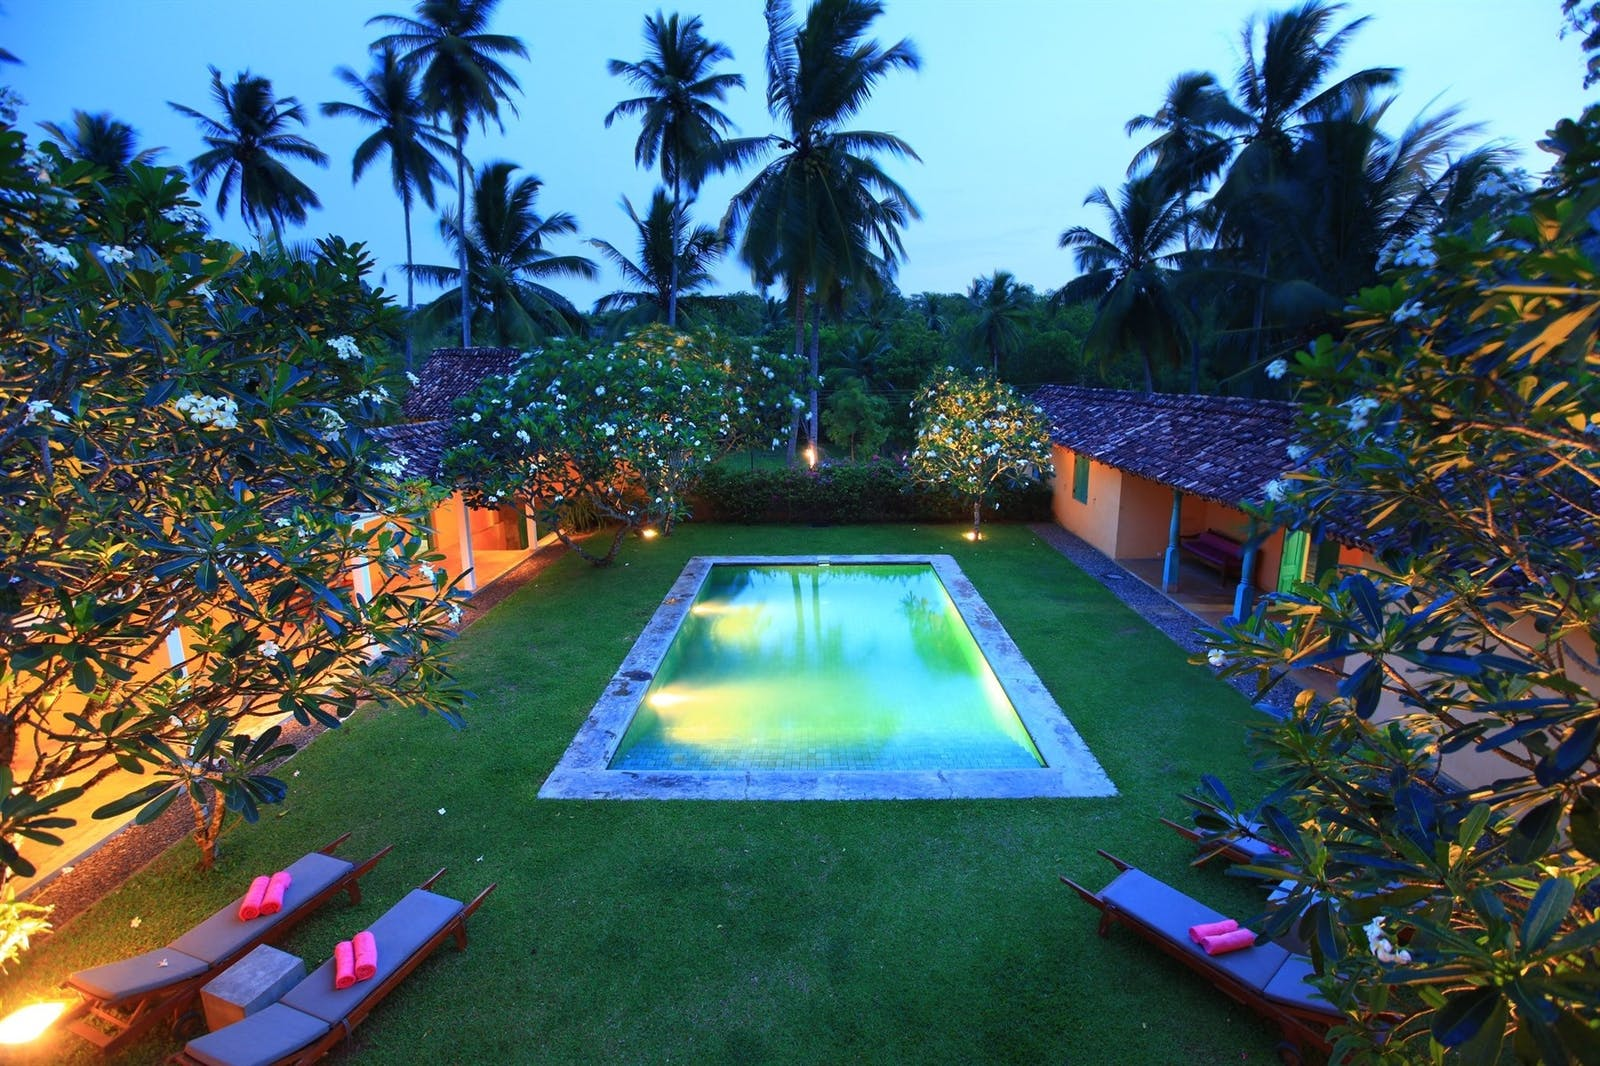 Evening Pool View, The Last House, South Coast Beaches, Tangalle, Sri Lanka